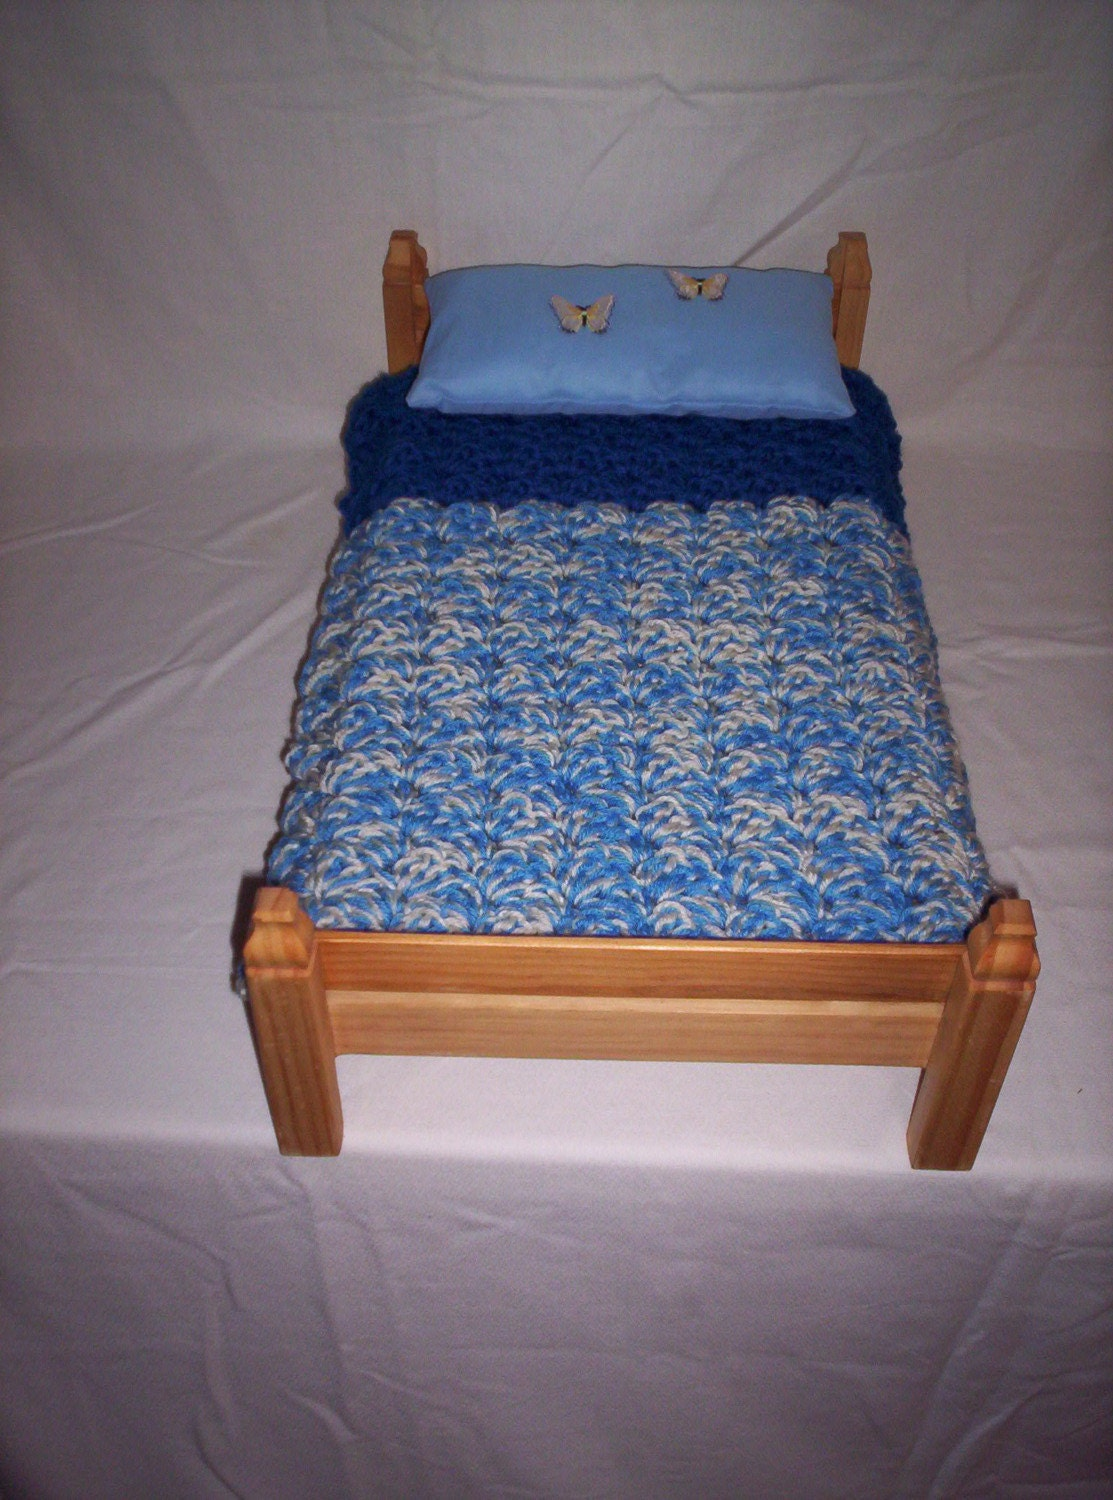 Marvelous photograph of Handmade Doll Bed fits 15 to 18 inch dolls or by mtbowles60 with #8F5A3C color and 1113x1500 pixels